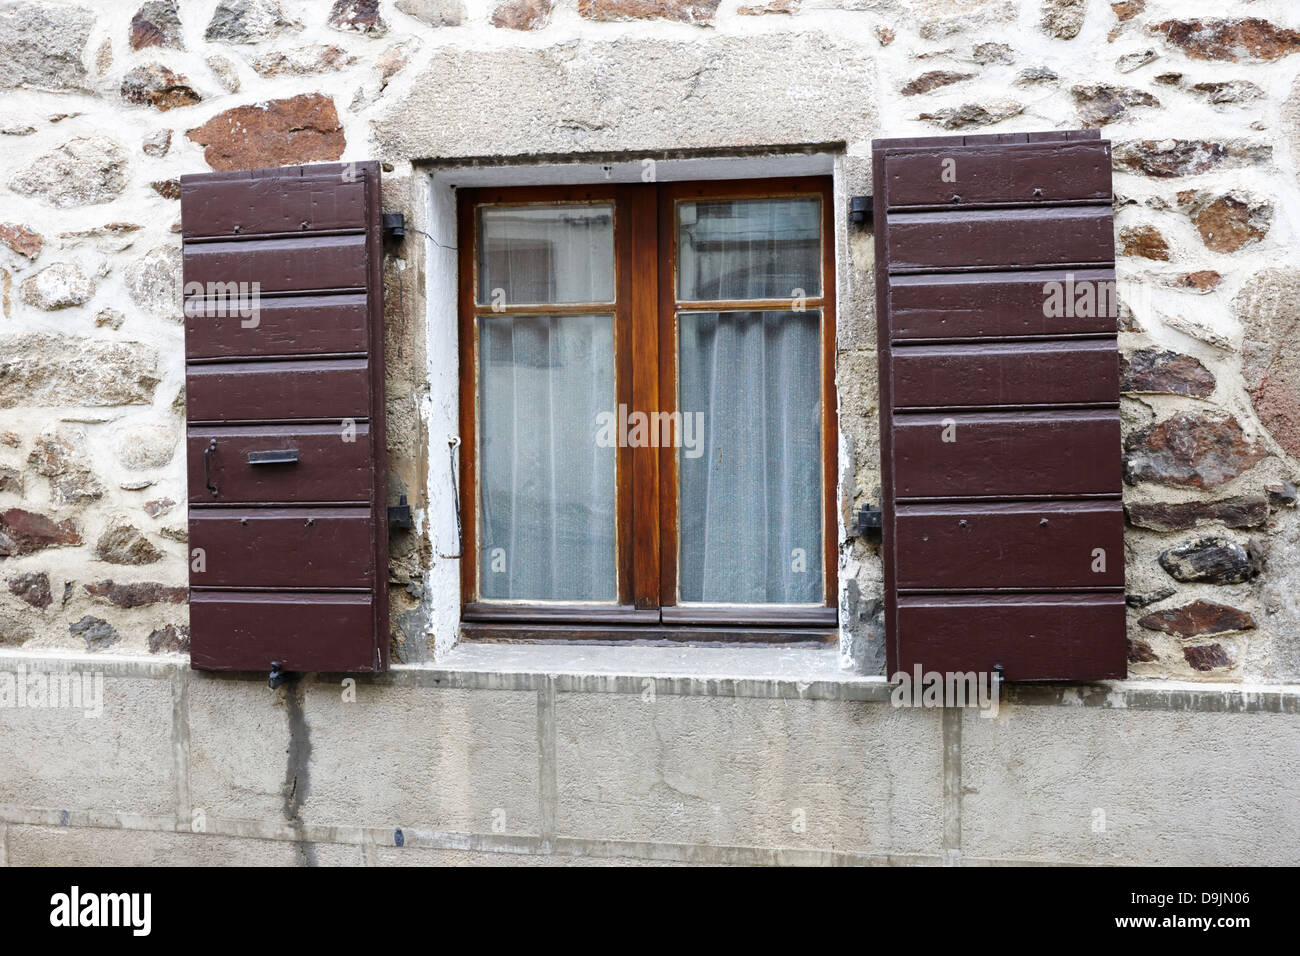 old stone window open stockfotos old stone window open bilder alamy. Black Bedroom Furniture Sets. Home Design Ideas